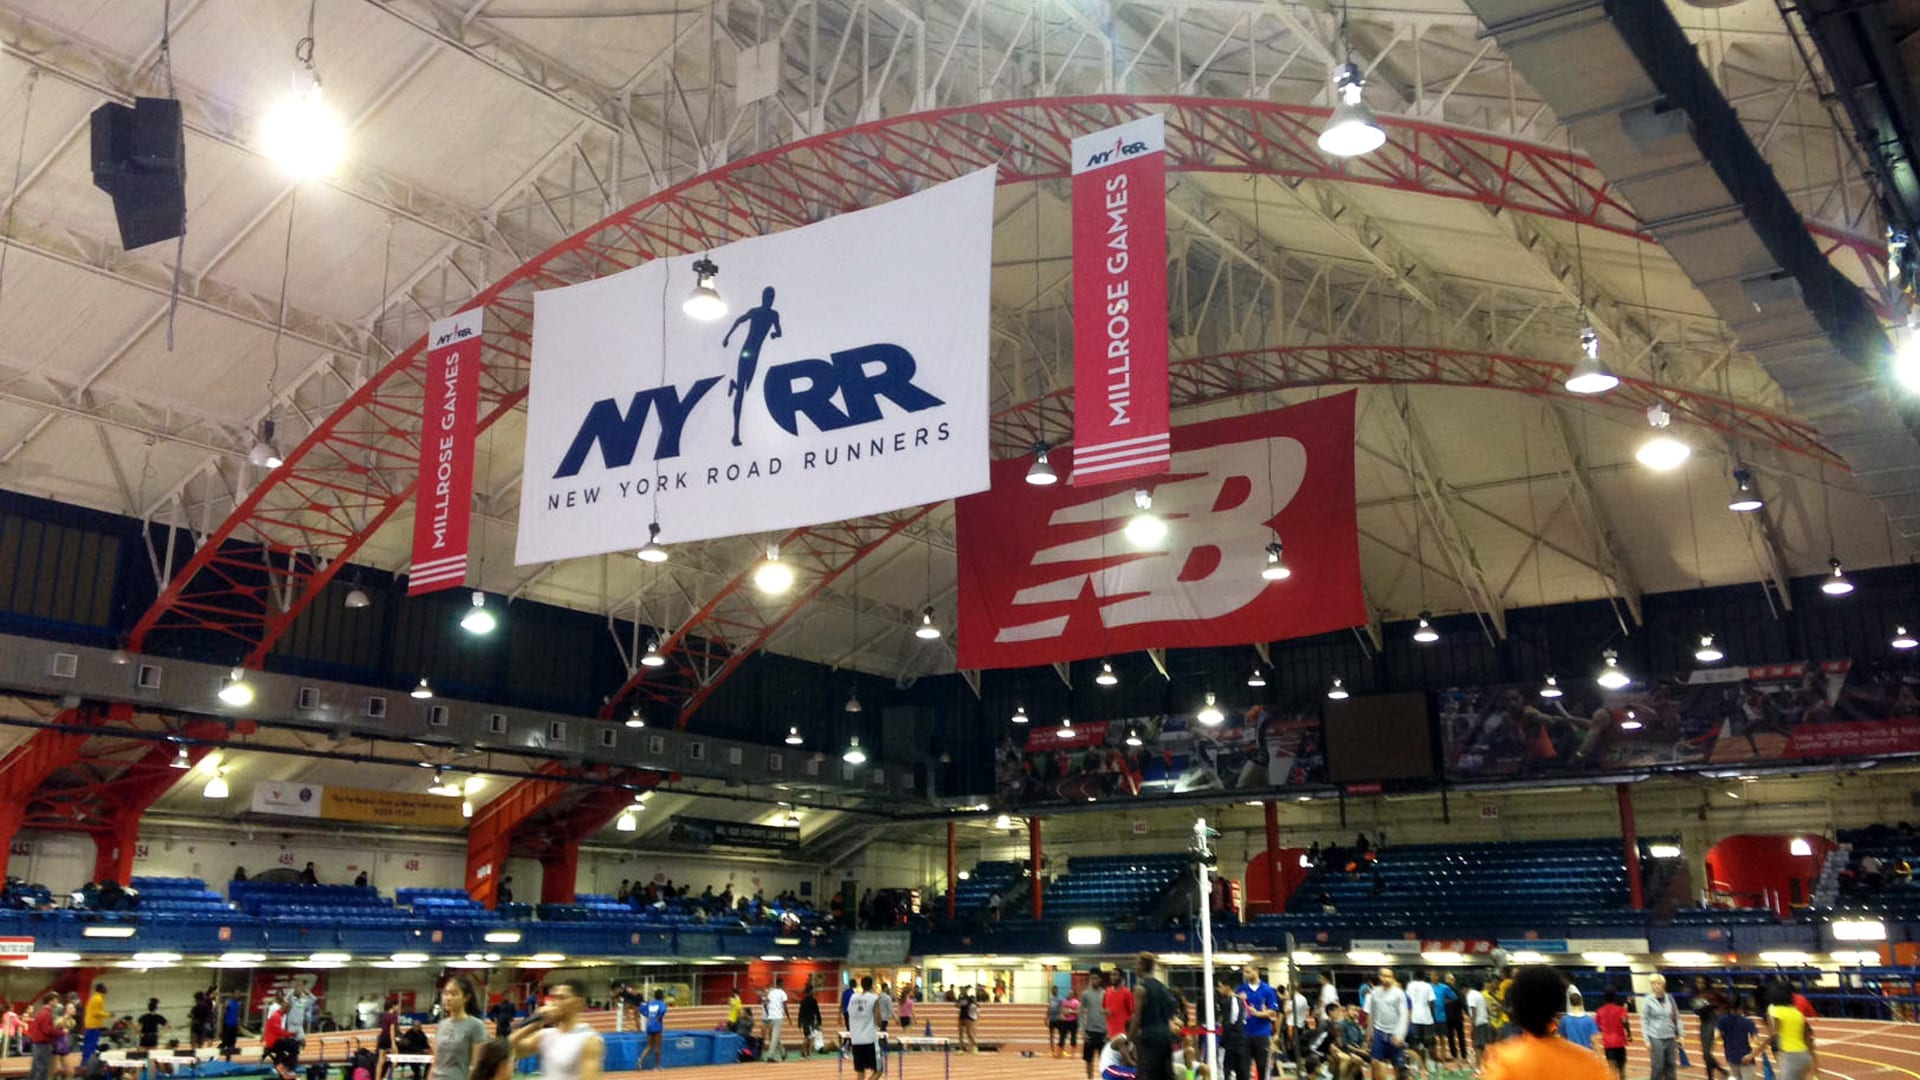 Banners & Posters - NYRR